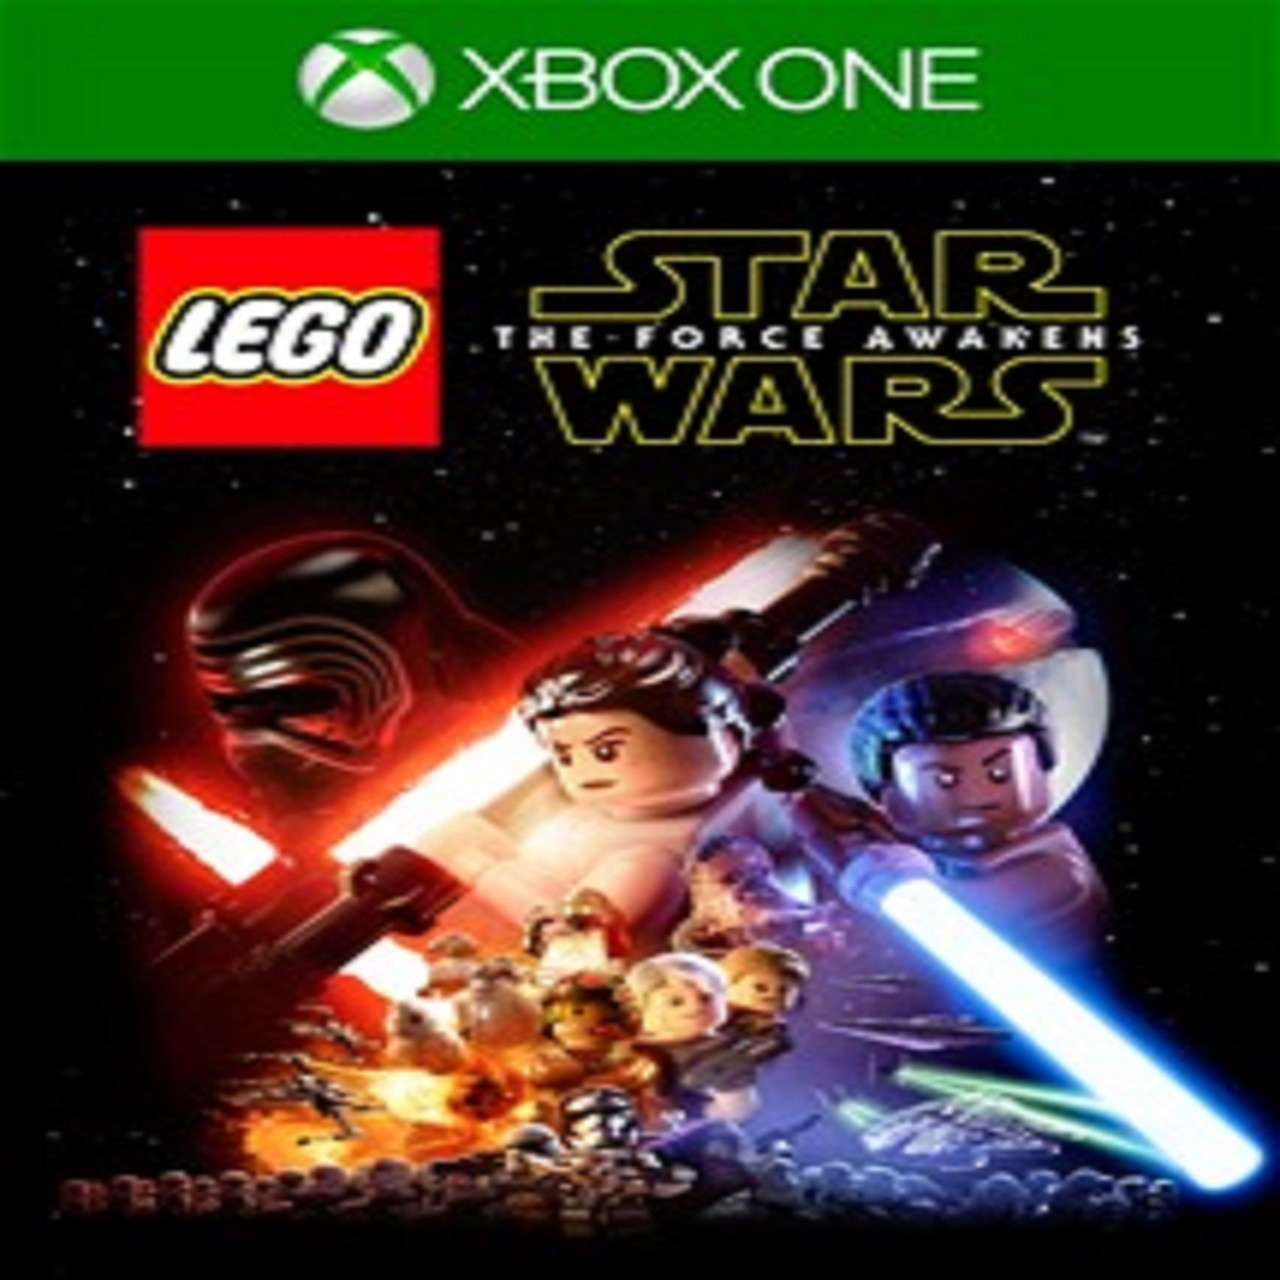 Lego Star Wars The Force Awakens (російські субтитри) XBOX ONE